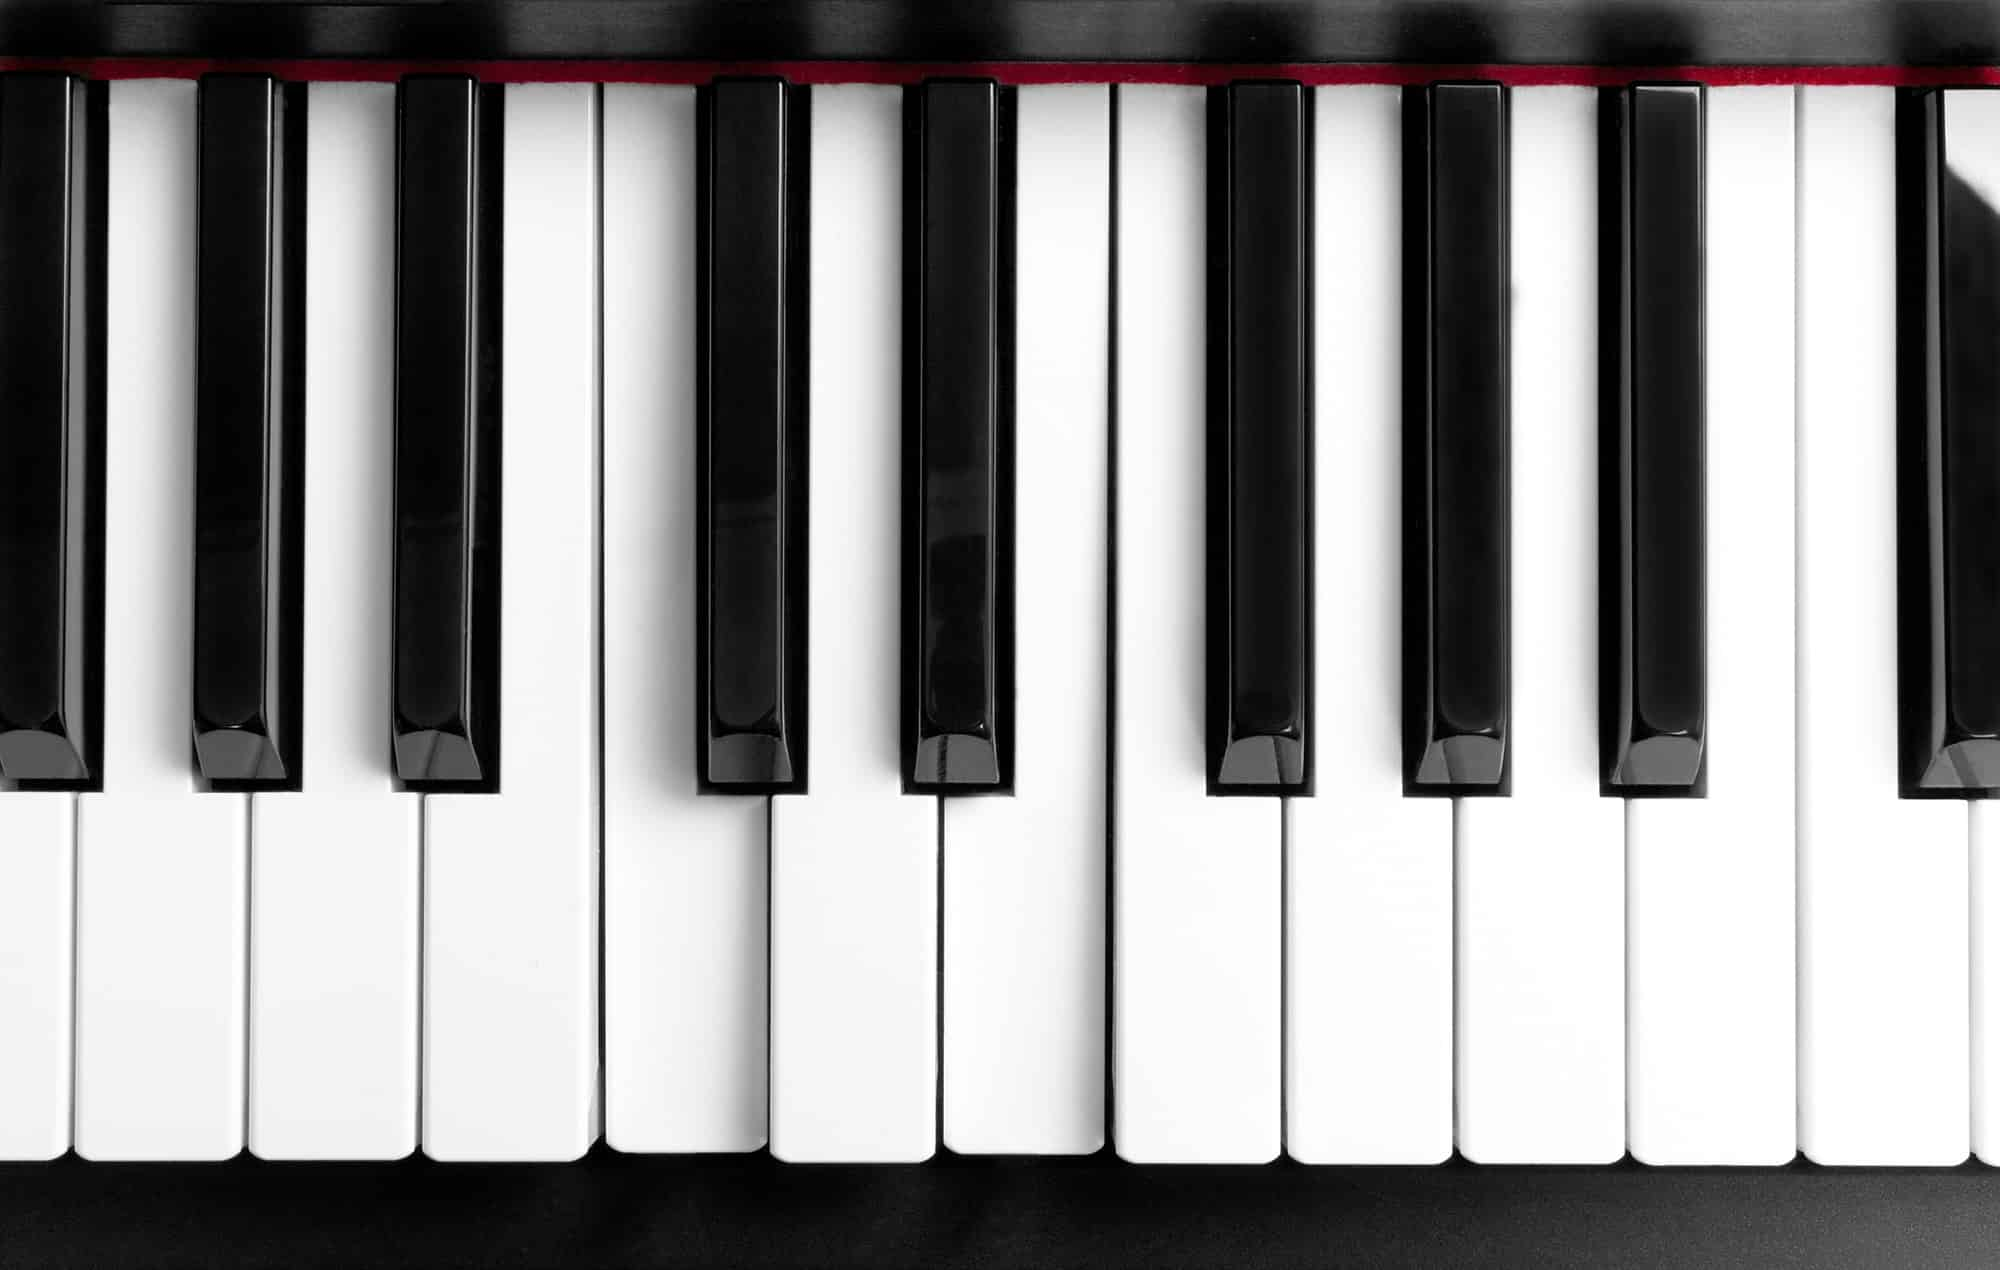 F# Piano Chord How To Learn The Basics Of Piano Chords Beginners Guide